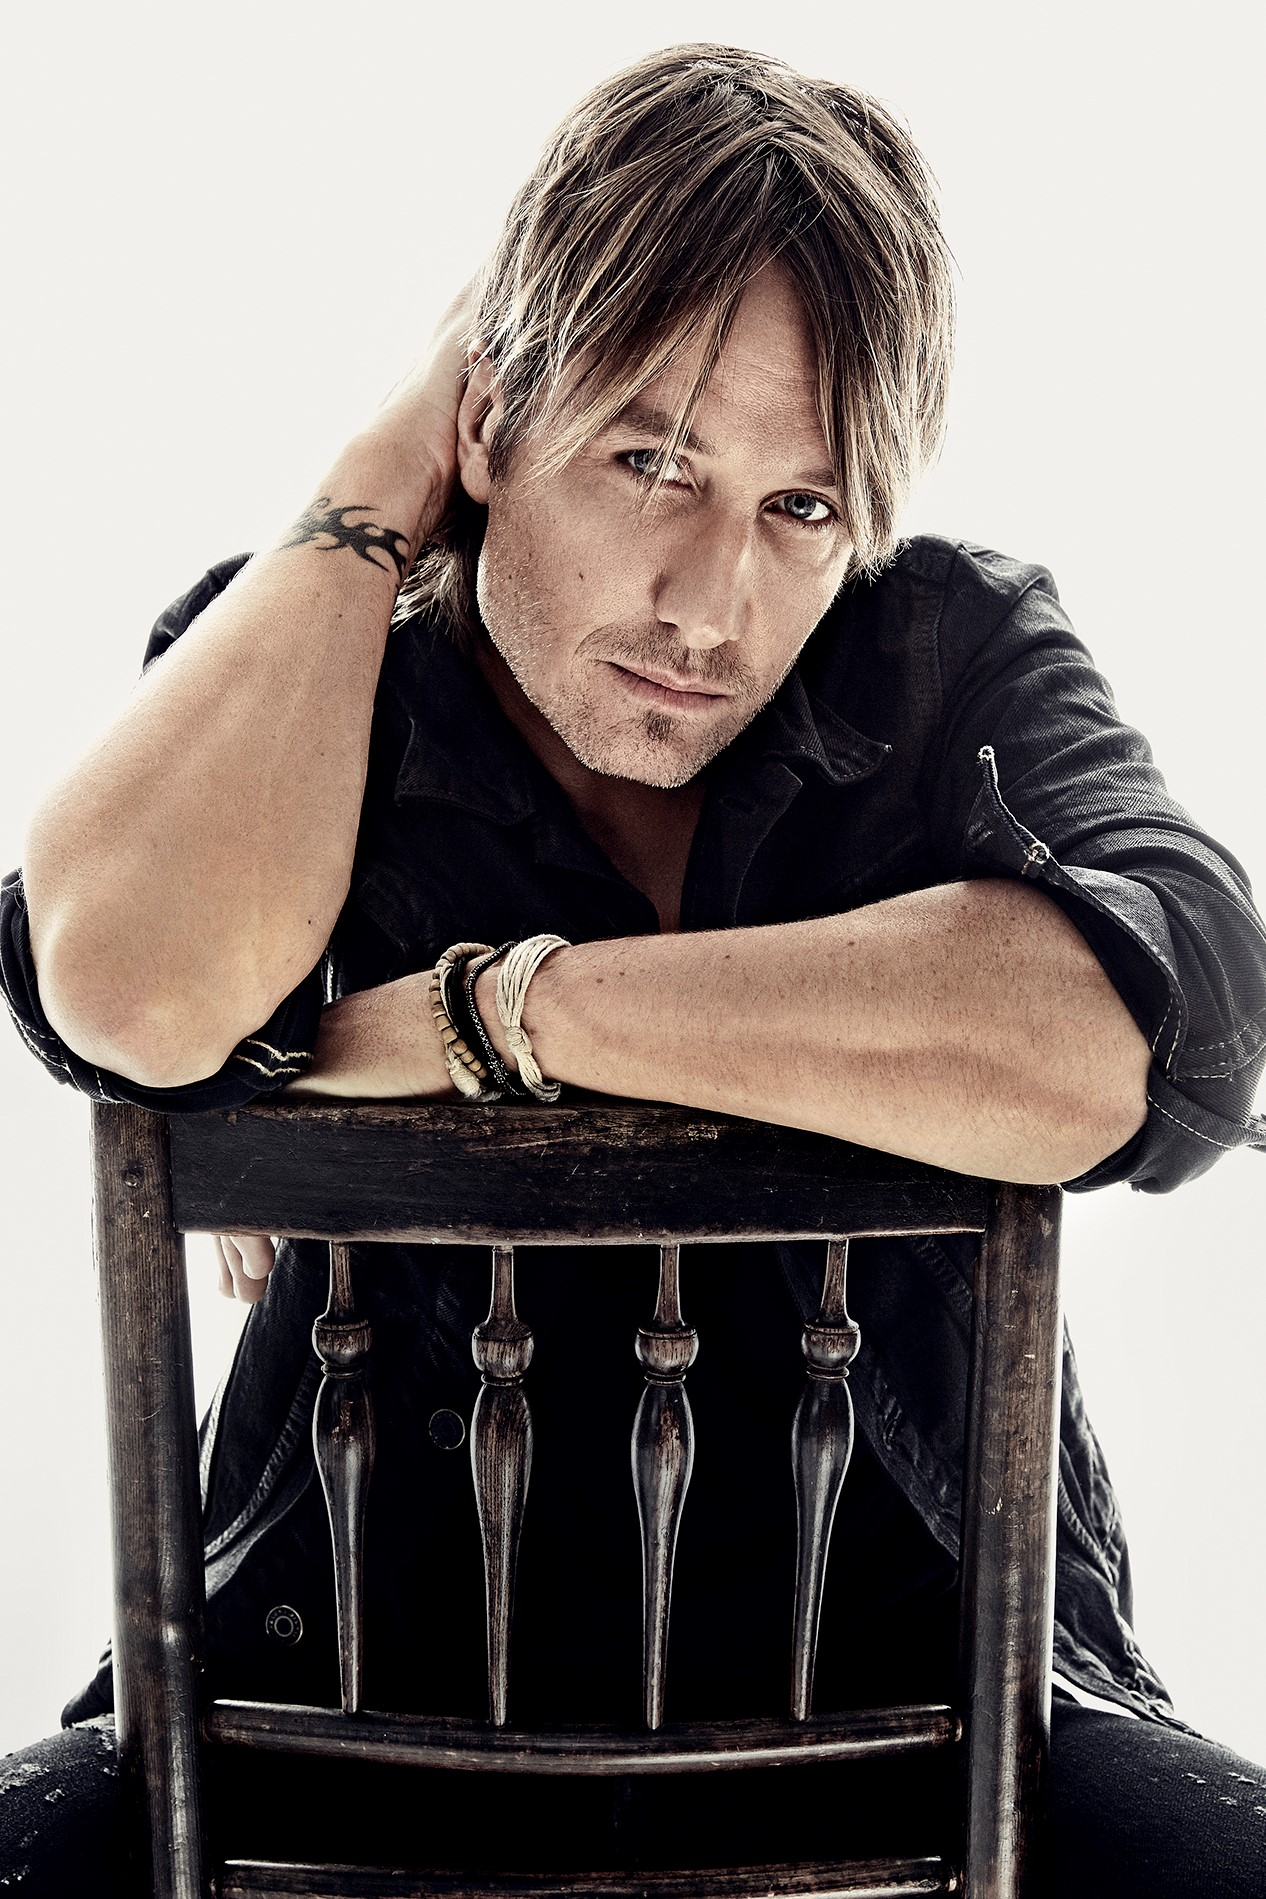 keith urban wallpapers high quality download free. Black Bedroom Furniture Sets. Home Design Ideas